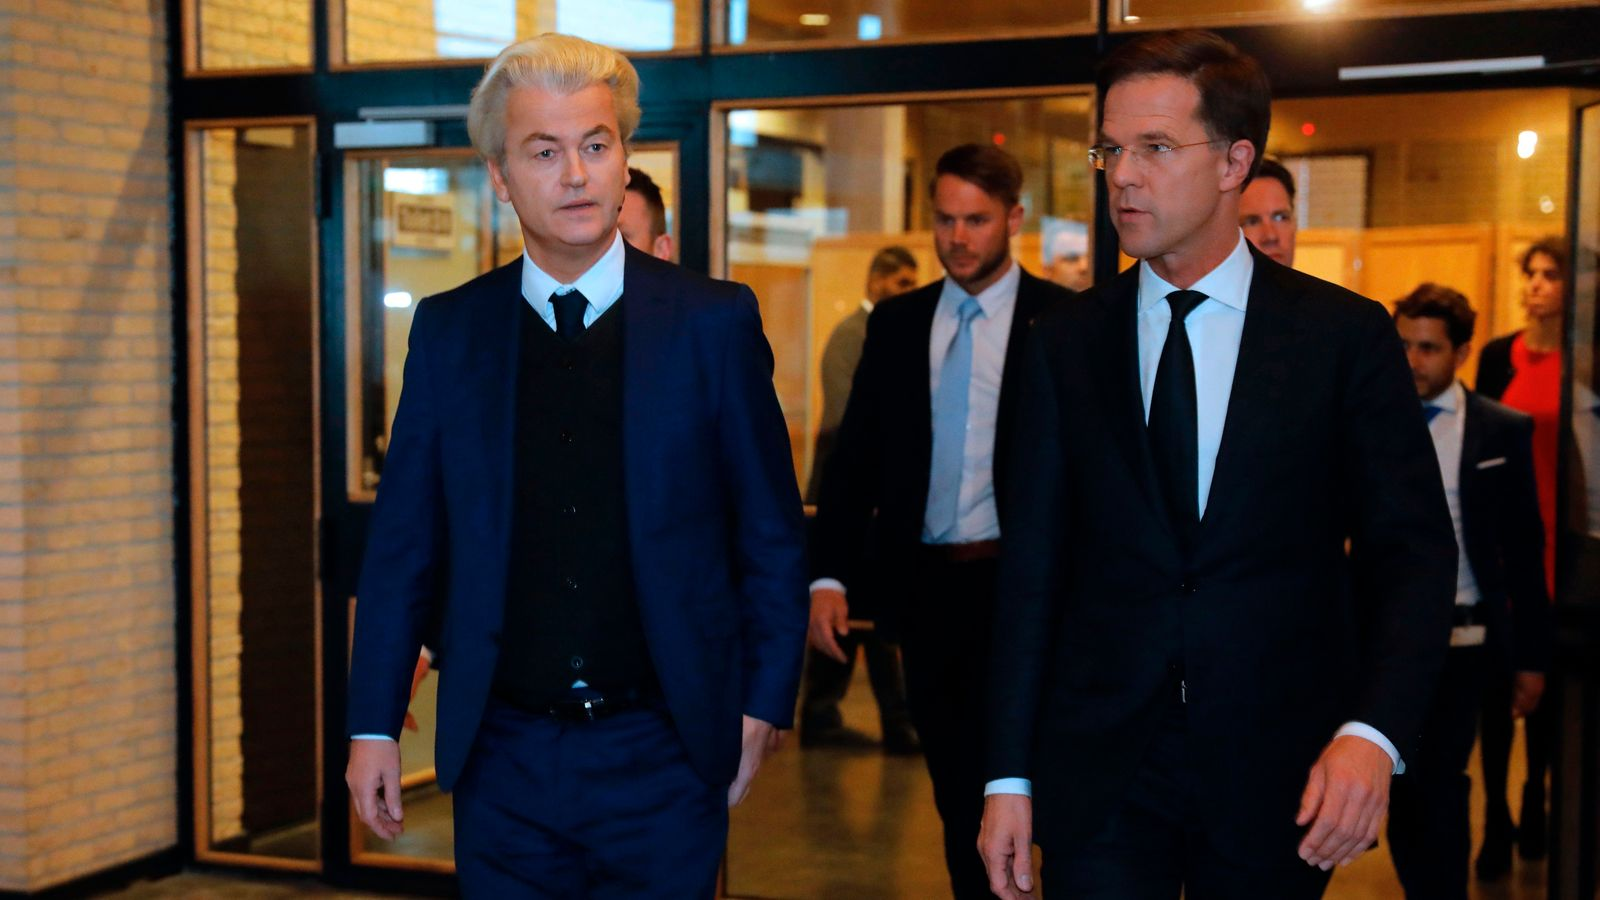 Mark Rutte (R) and Geert Wilders